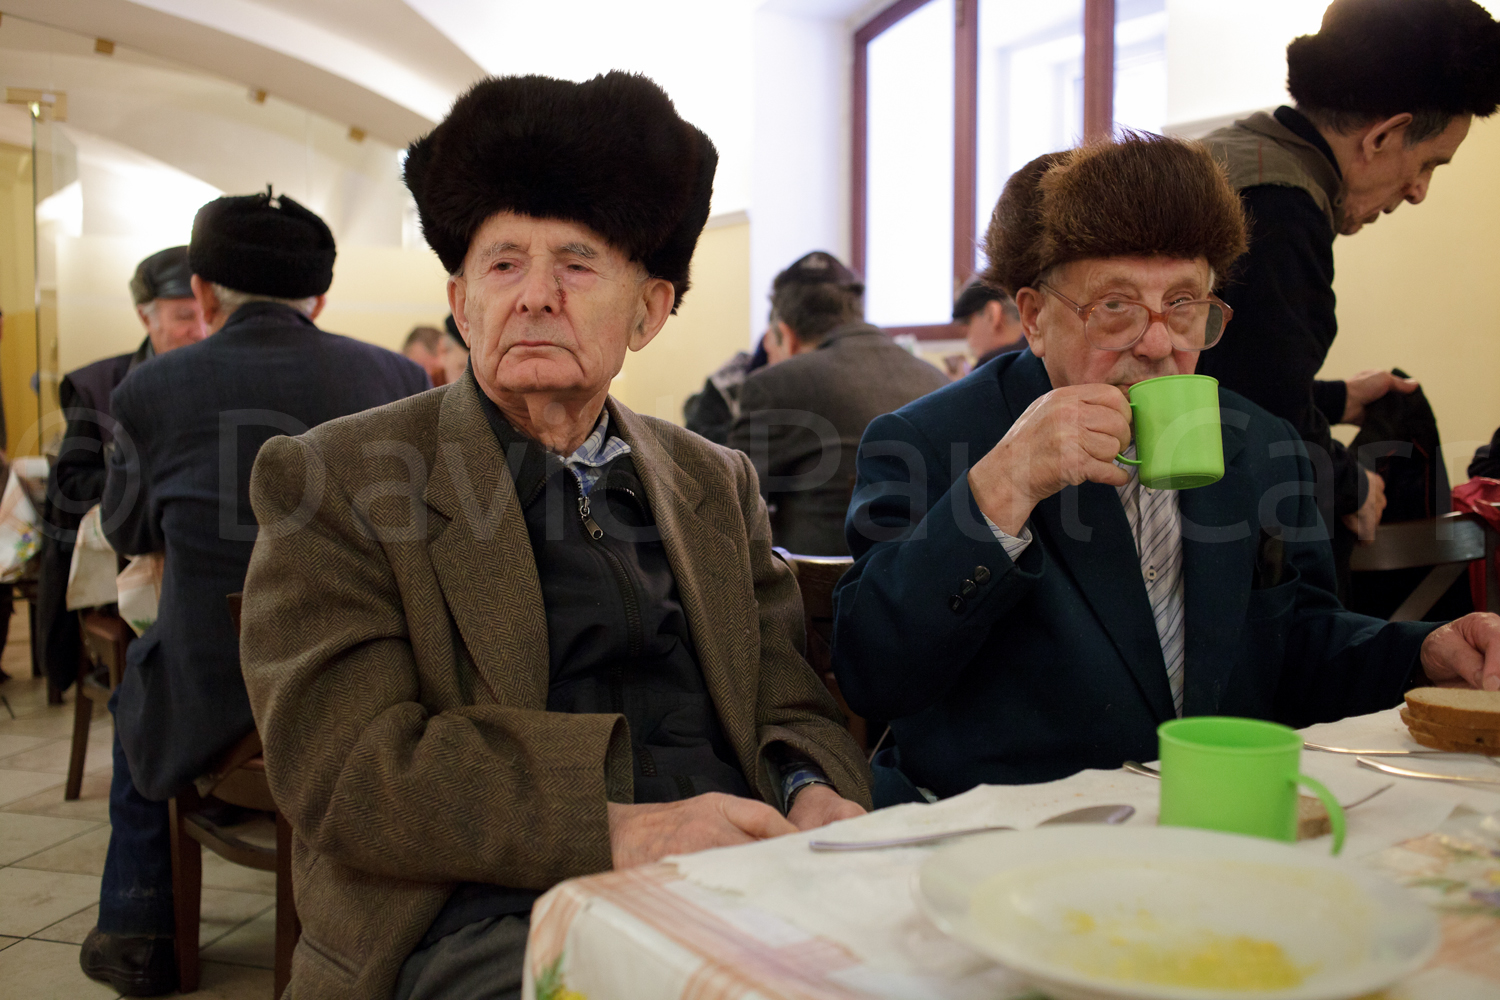 Elderly men at lunch in the free canteen of the Saint Petersburg synagogue.